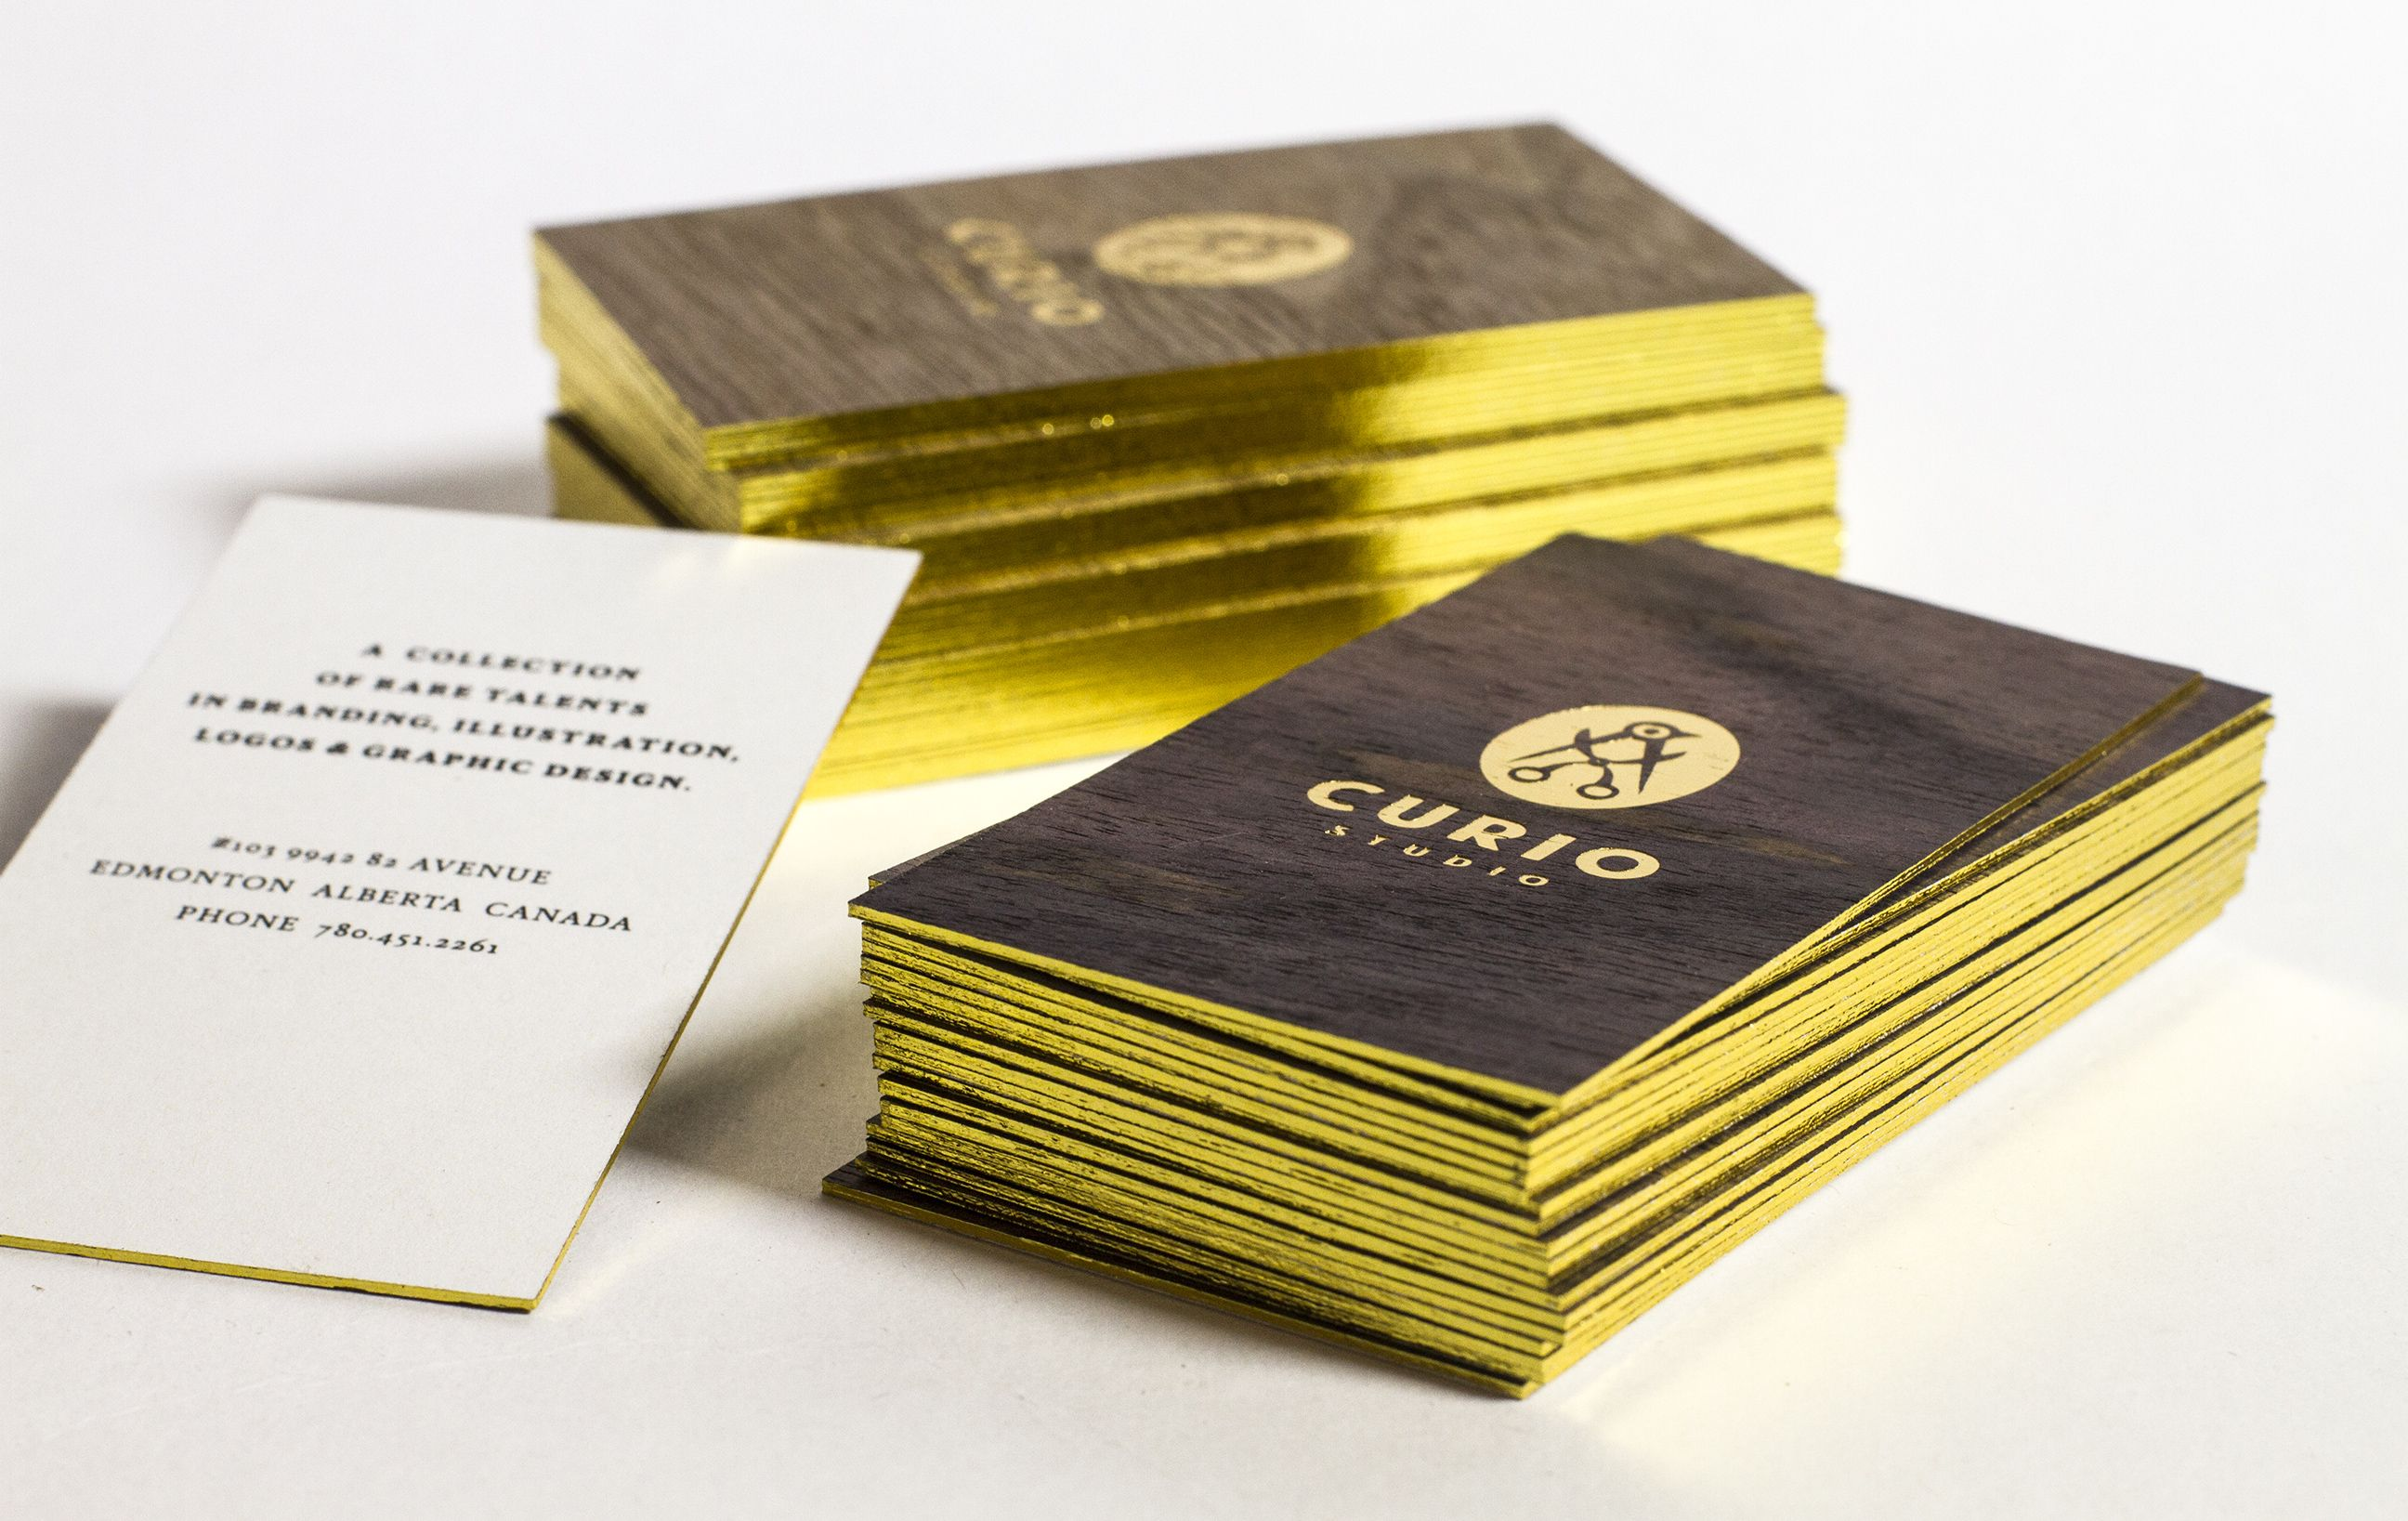 W1s Wooden Business Cards With White Backing Gold Foil Stamping And Gold Foil Edges Jukeboxprin Foil Business Cards Wooden Business Card Wood Business Cards